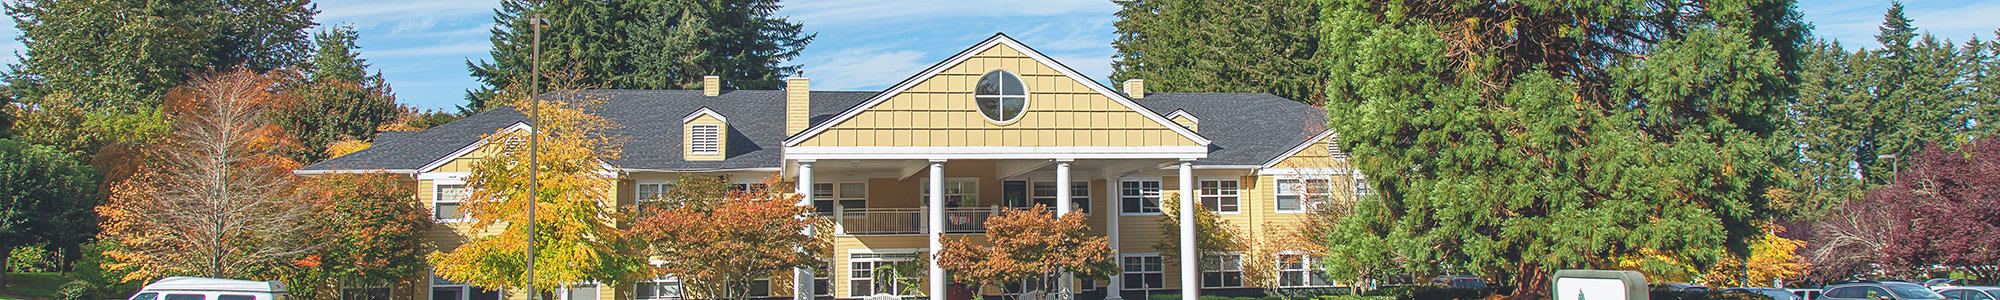 Map and directions to senior living in Olympia, WA